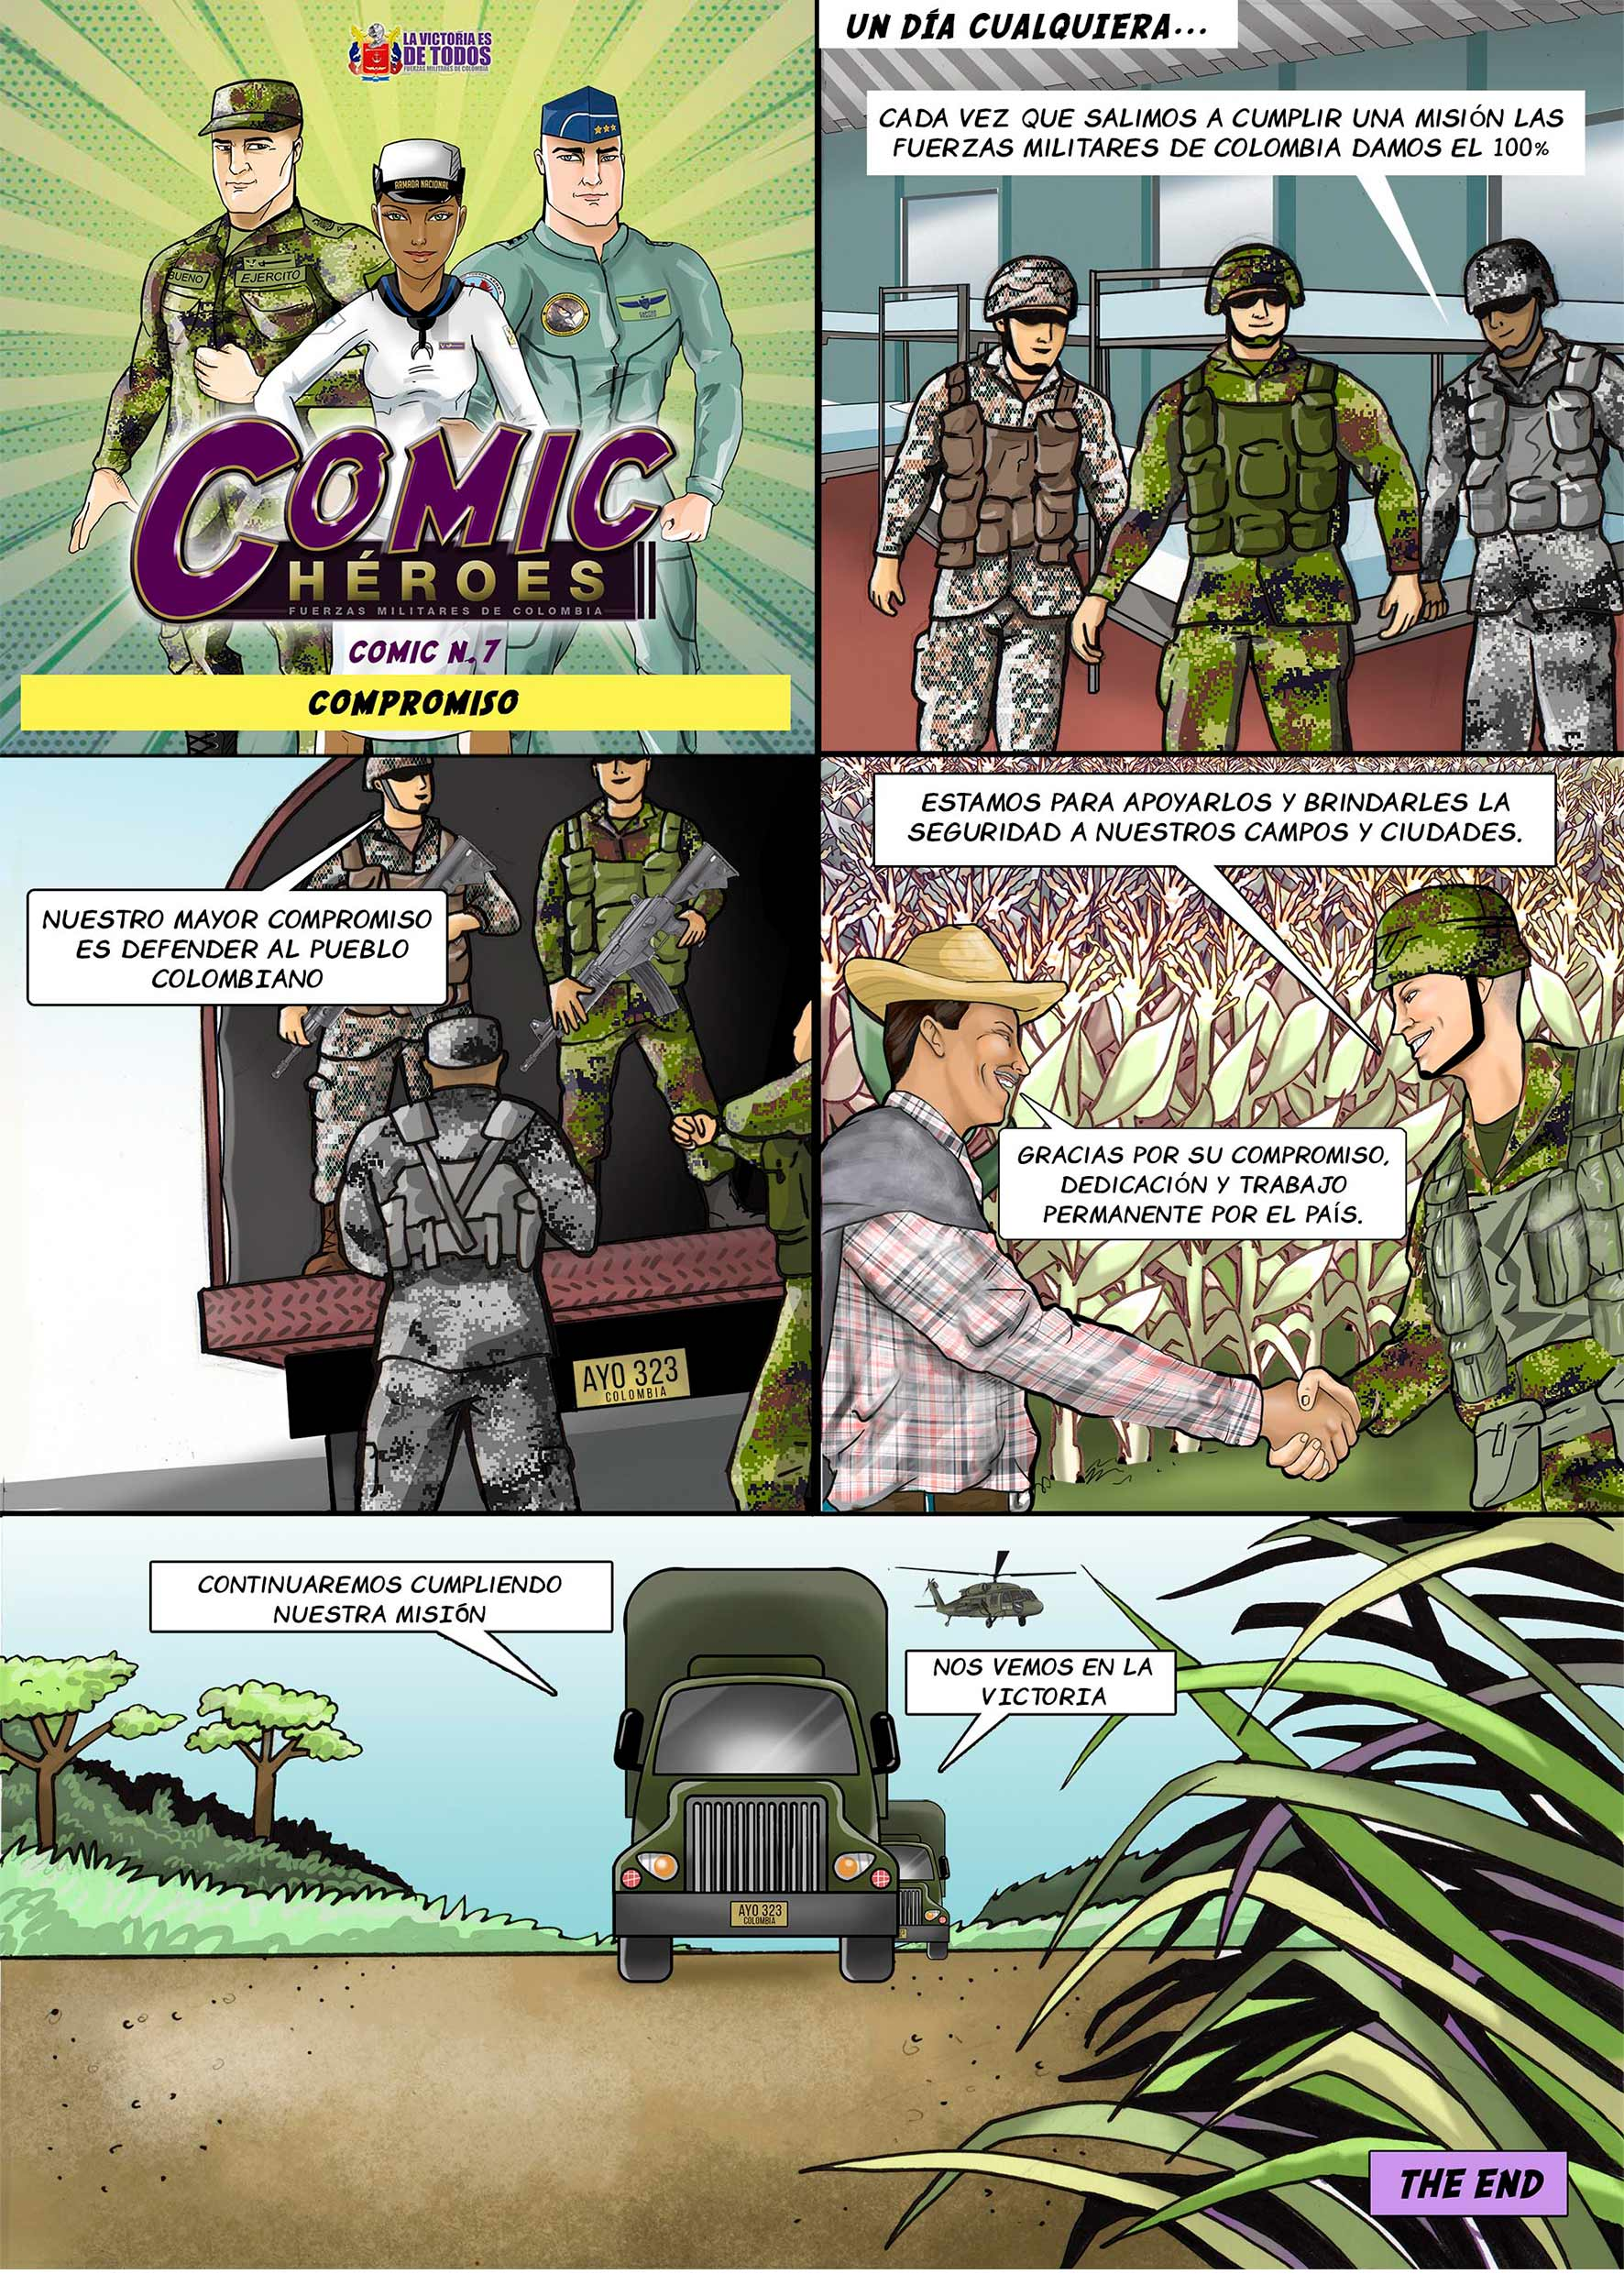 comic héroes Compromiso